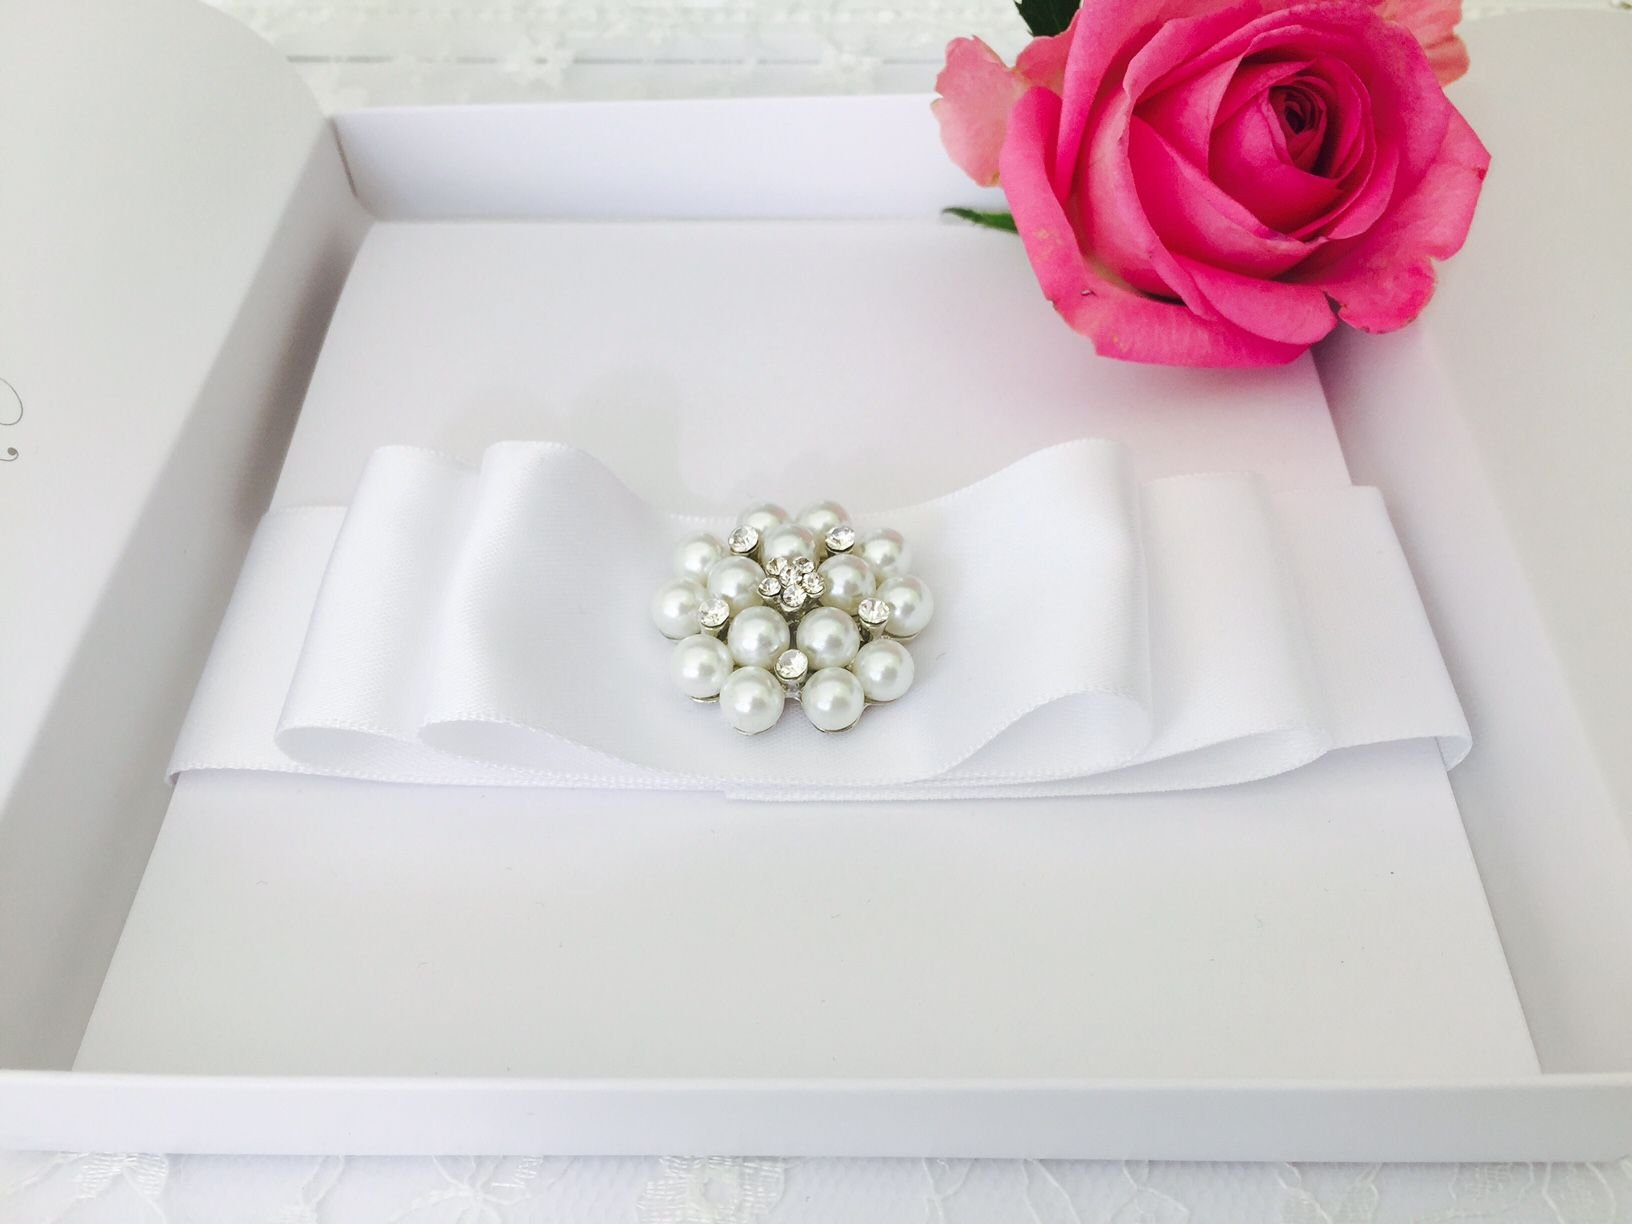 White boxed wedding invitation with elegant pearl brooch